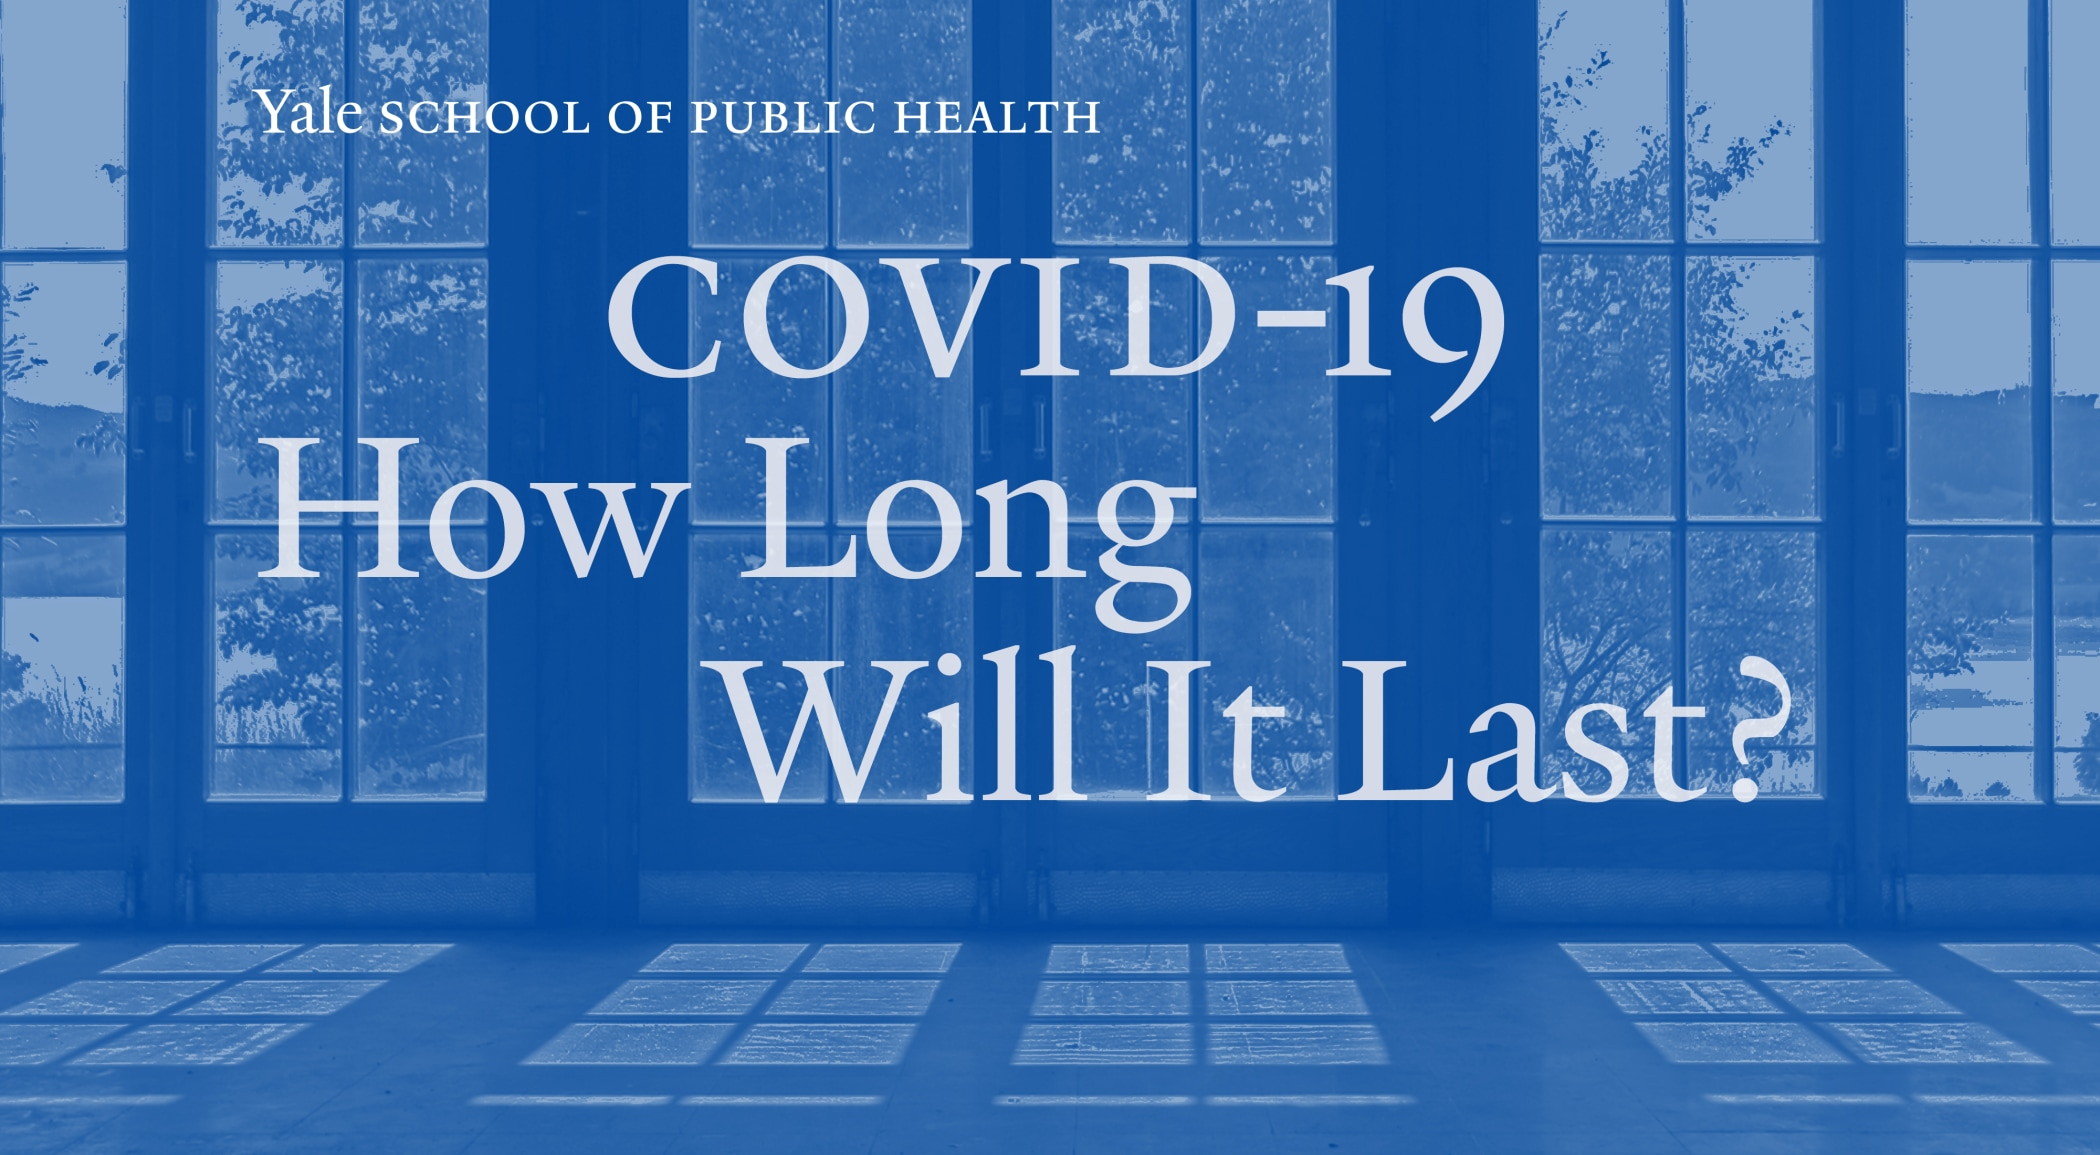 COVID-19 Is Here. Now How Long Will It Last?